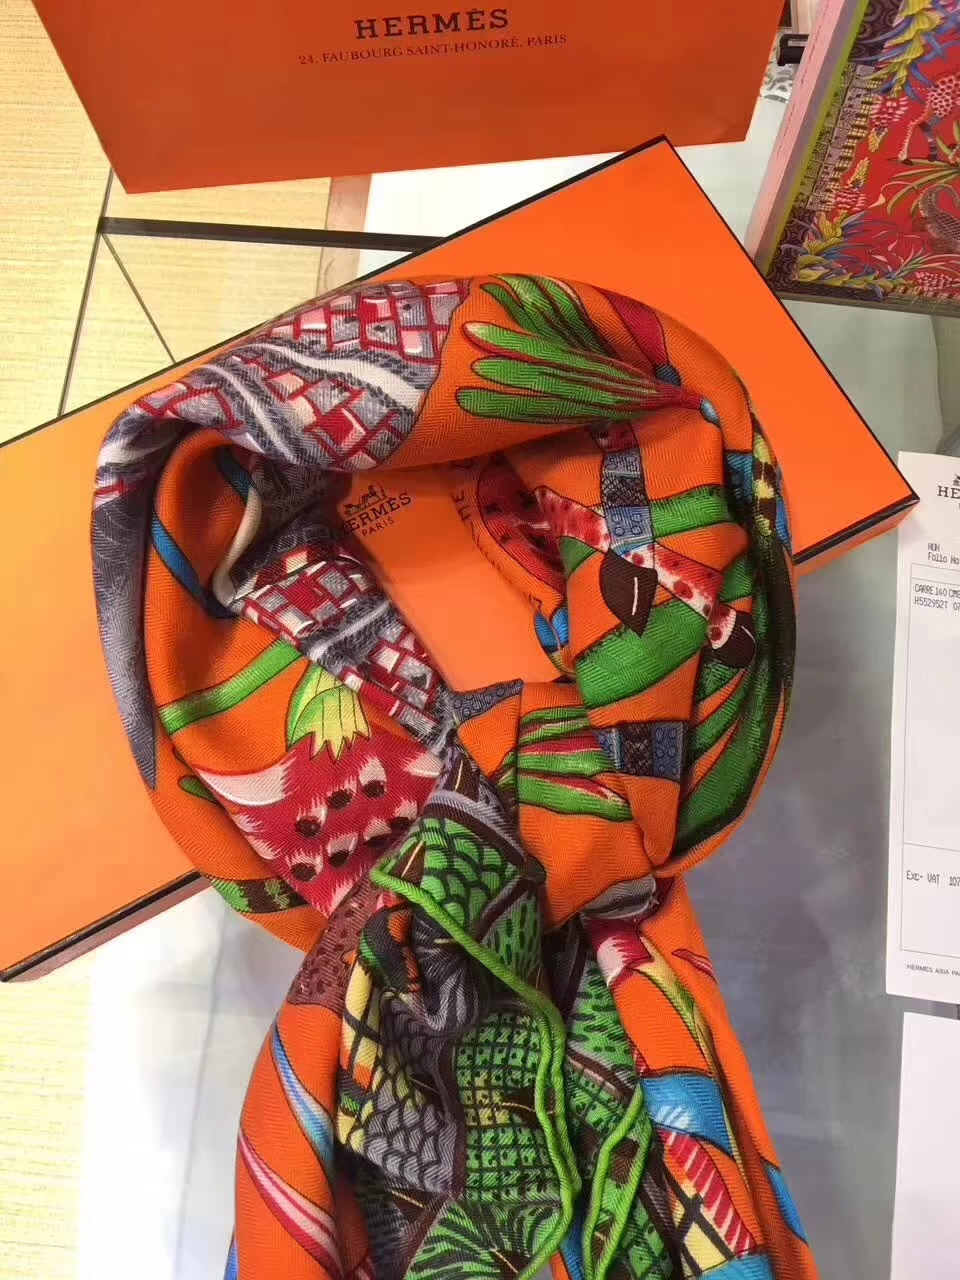 Luxury Hermes Cashmere Scarf Grade-A Women's Cape in Orange140*140cm